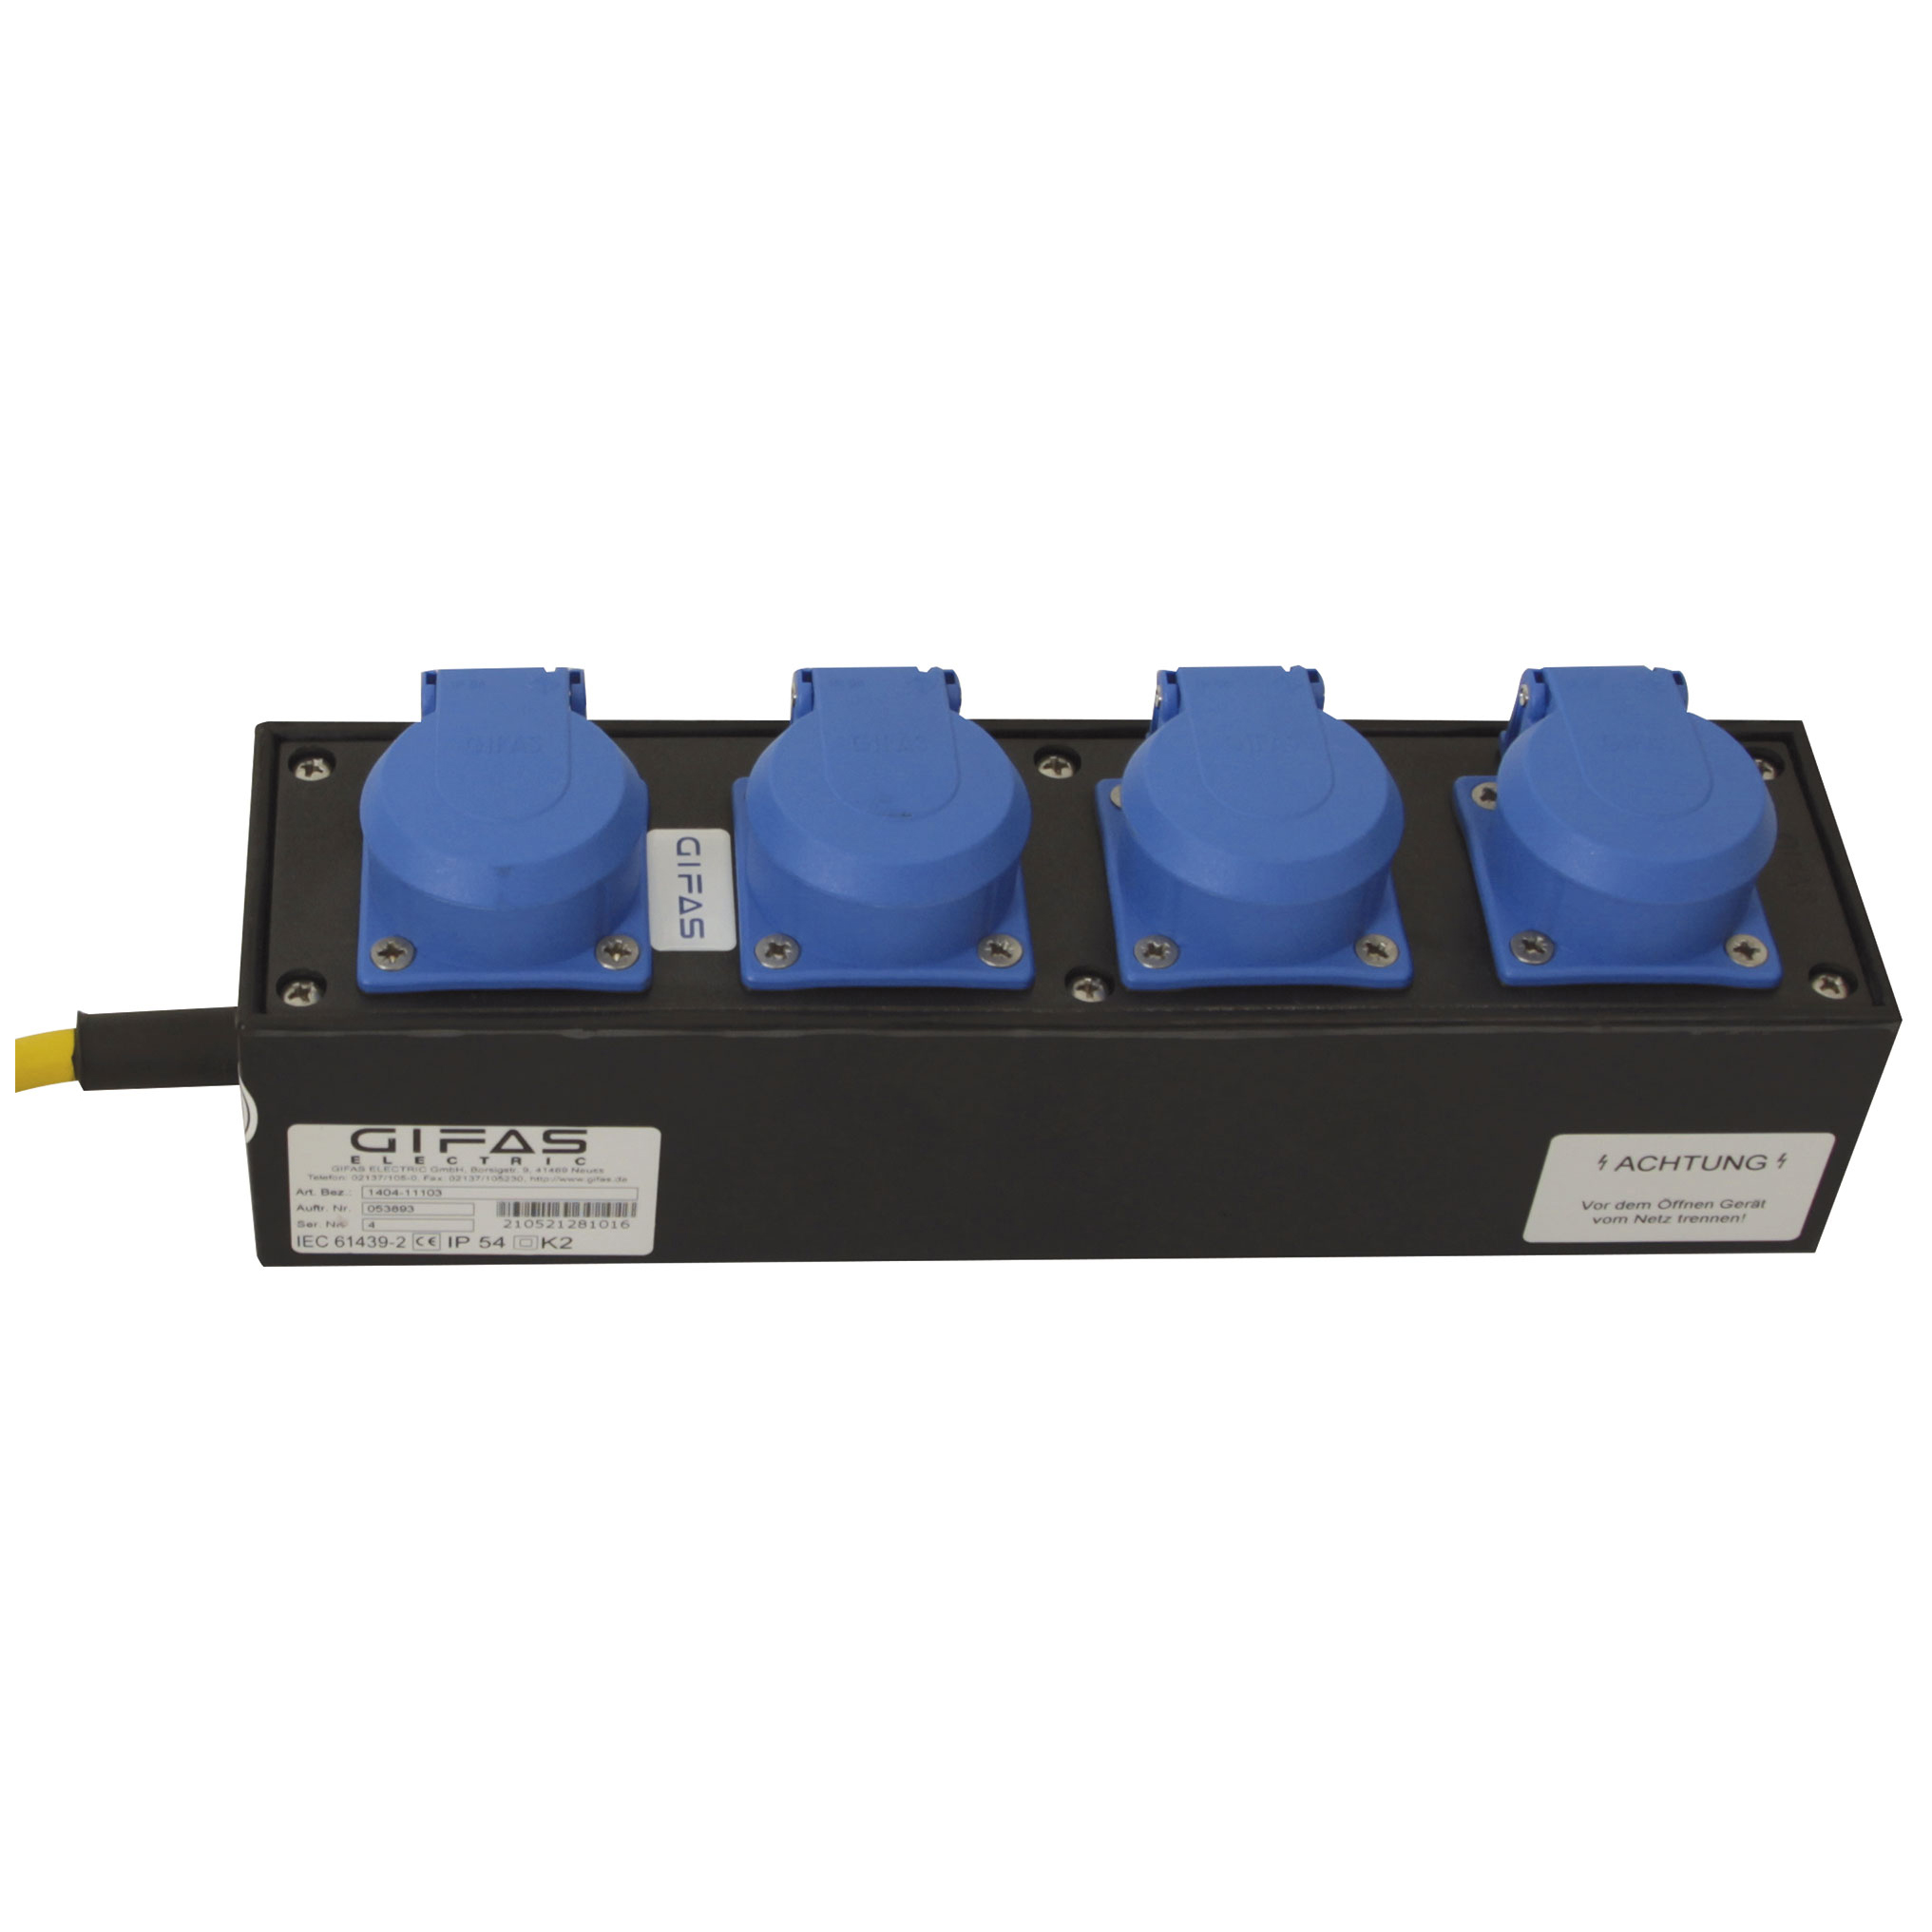 GIFAS Solid Rubber Small Mobile Distributor Type 1400 - 301480, 210521